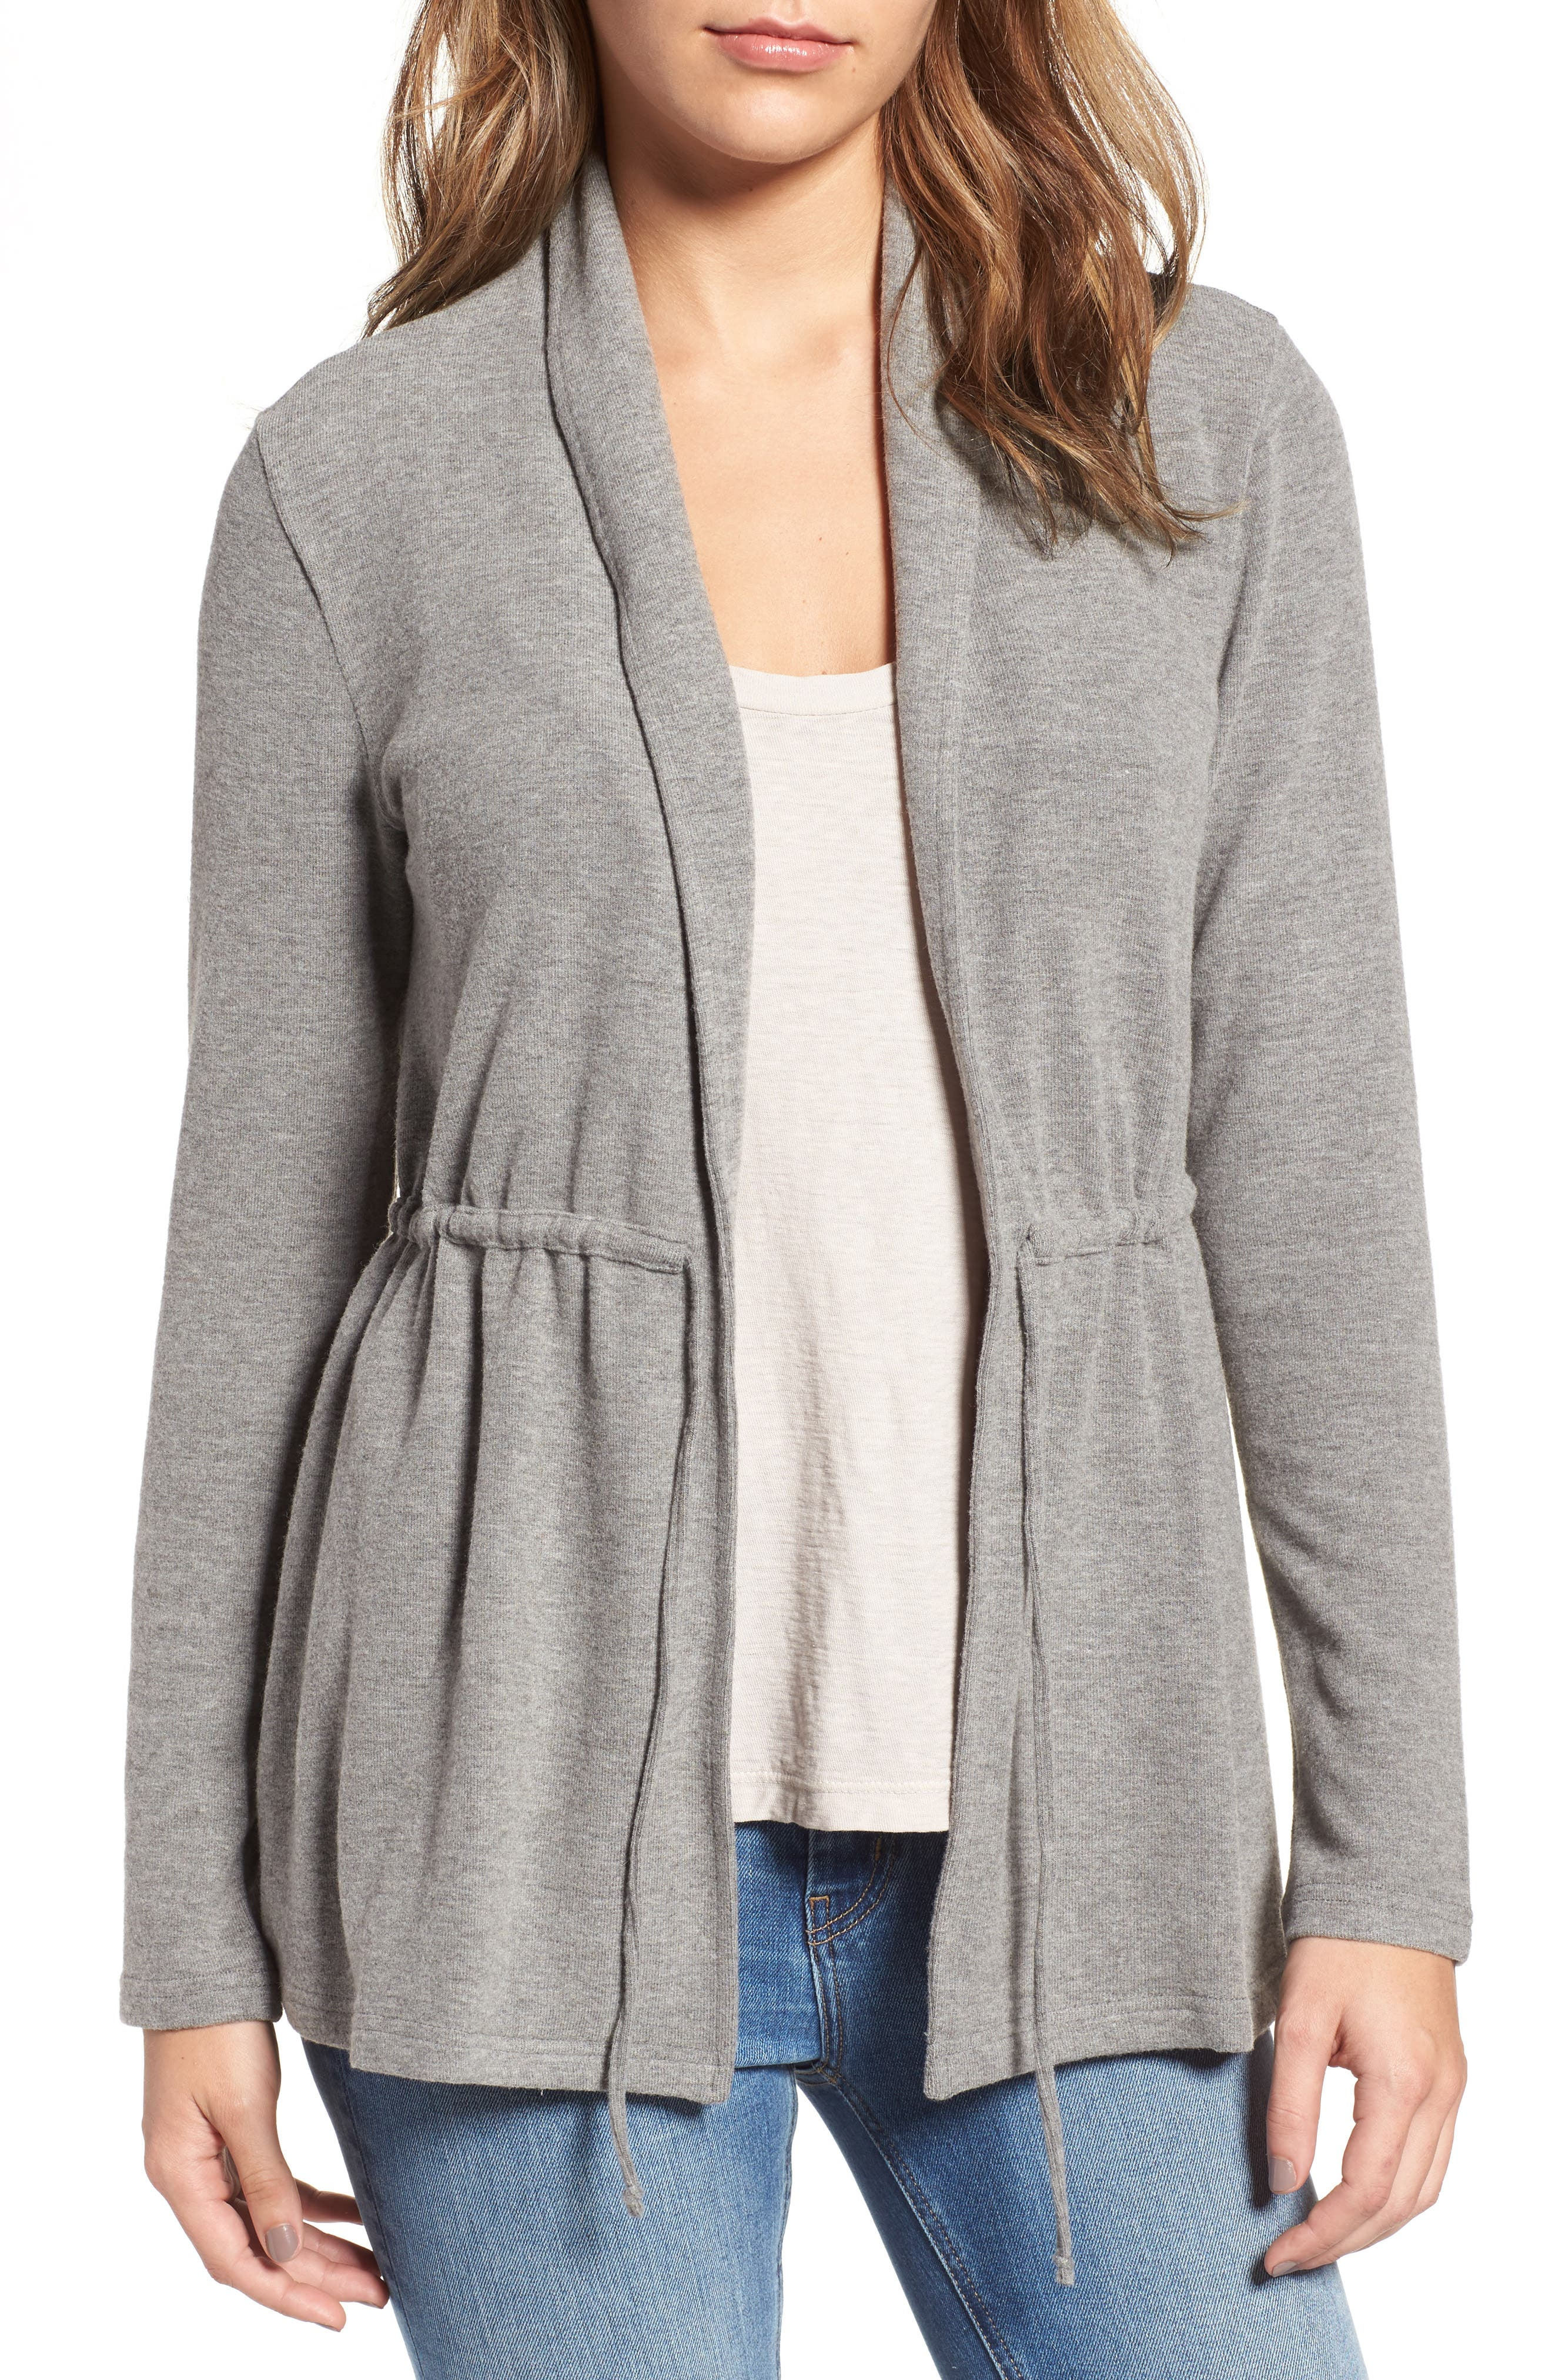 cupcakes and cashmere Nero Tie Front Cardigan